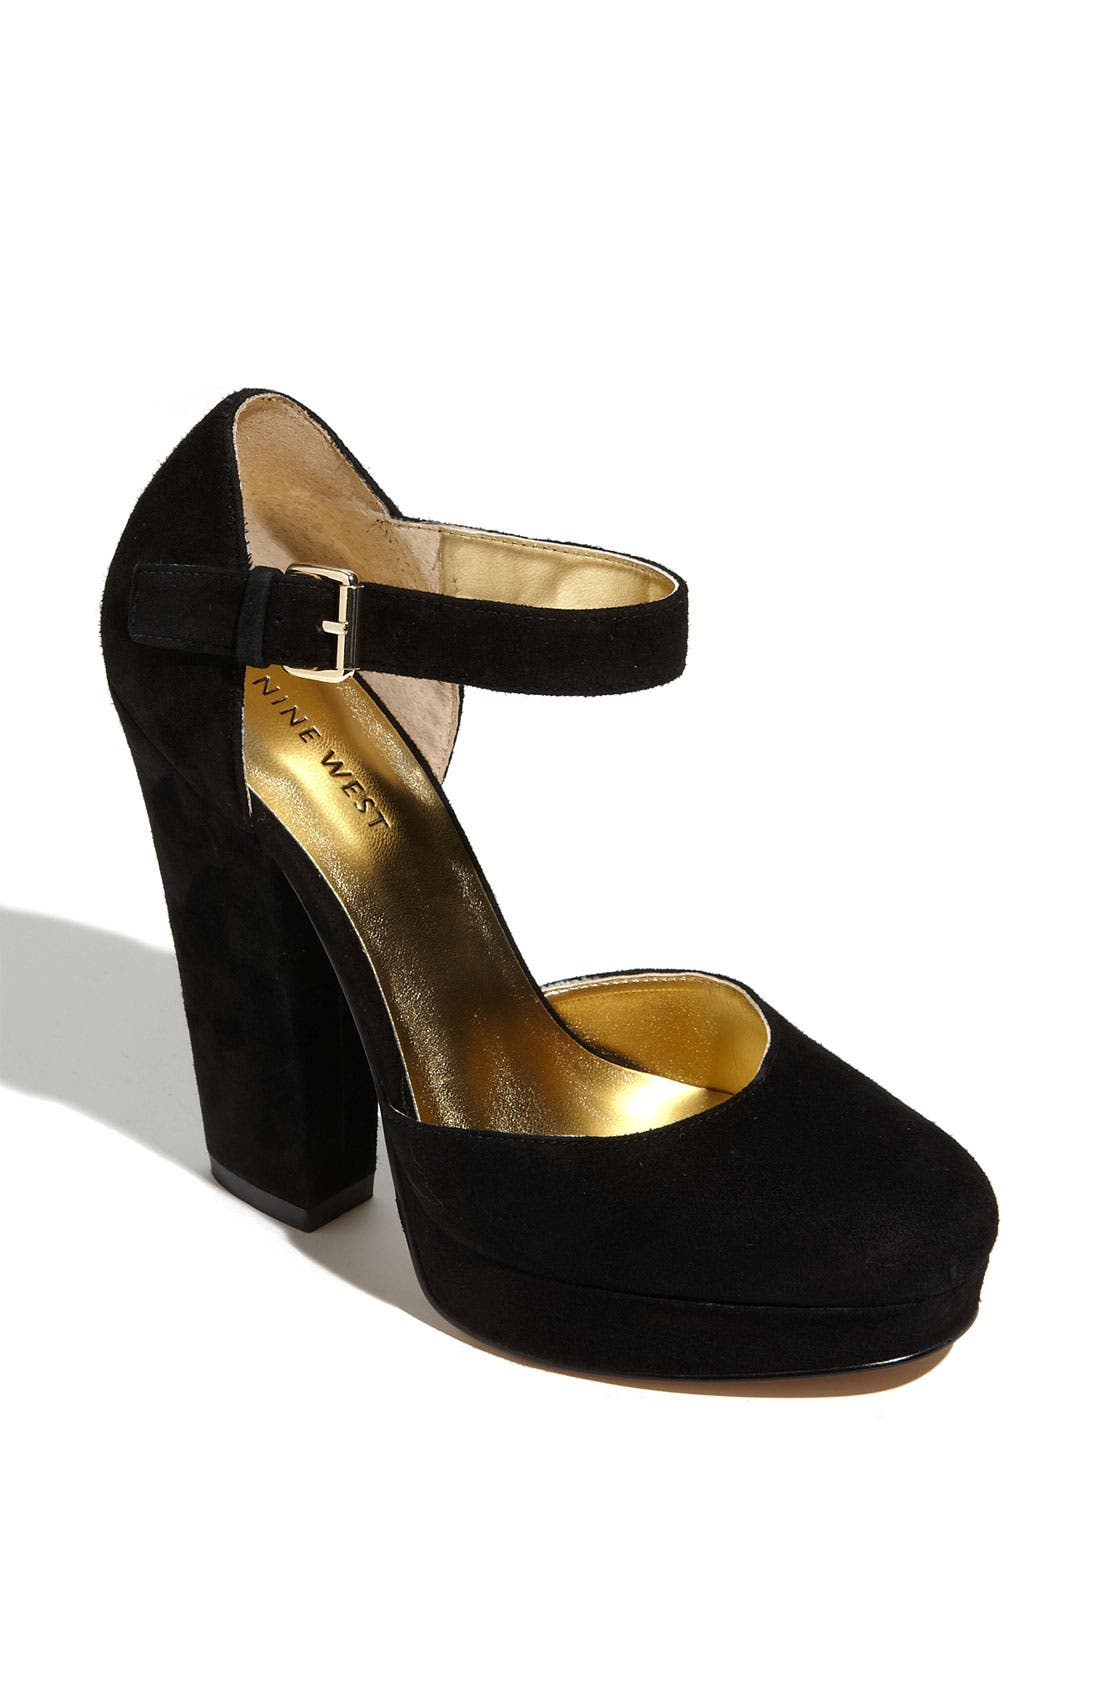 Alternate Image 1 Selected - Nine West 'Aroundtown' Mary Jane Pump